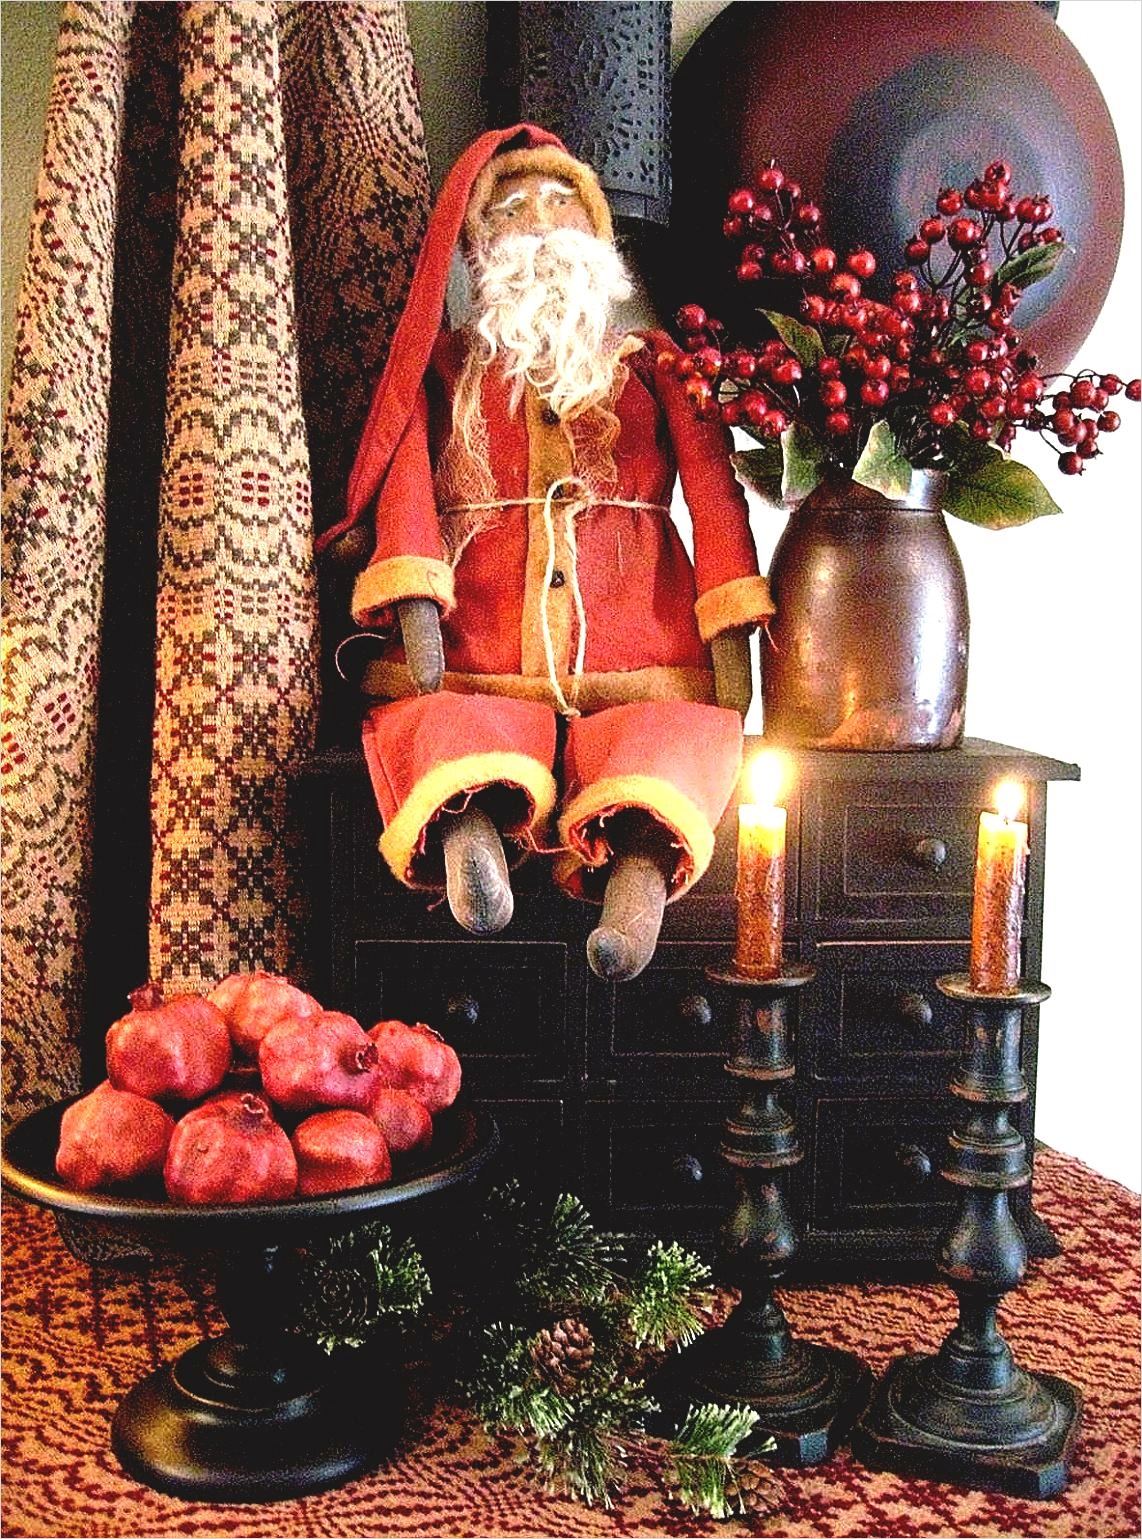 42 Stunning Country Christmas Centerpieces Ideas Ideas 47 astounding Primitive Country Home Decor for Traditional House Goodhomez 3